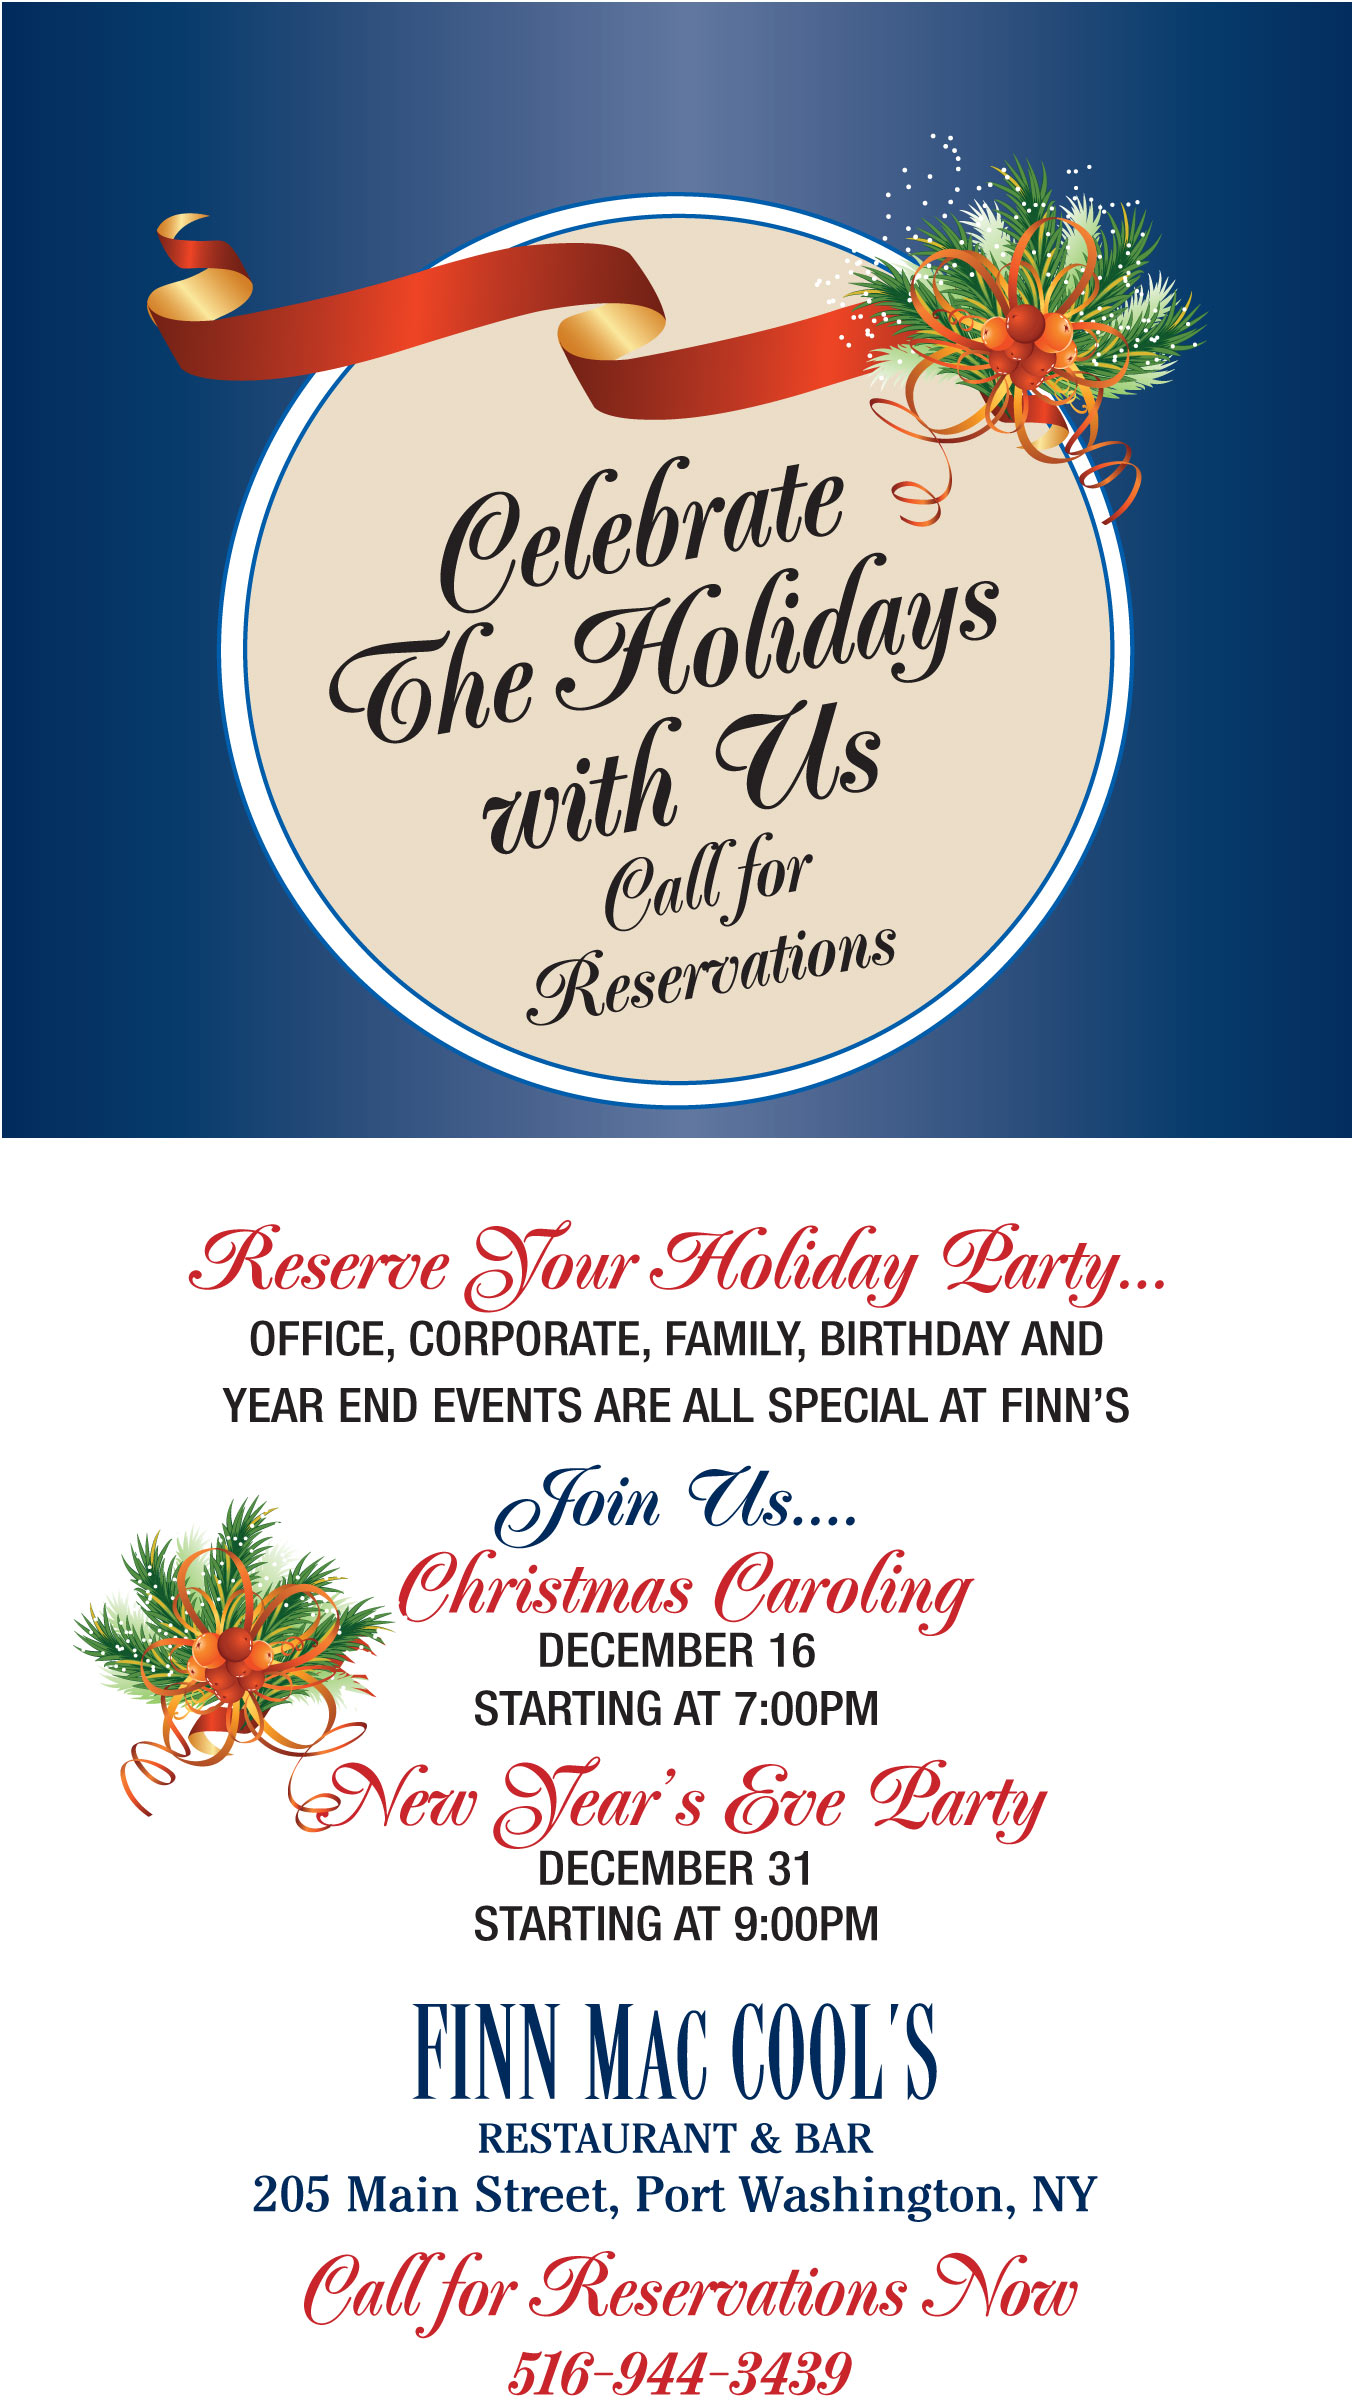 Celebrate The Holidays with Us